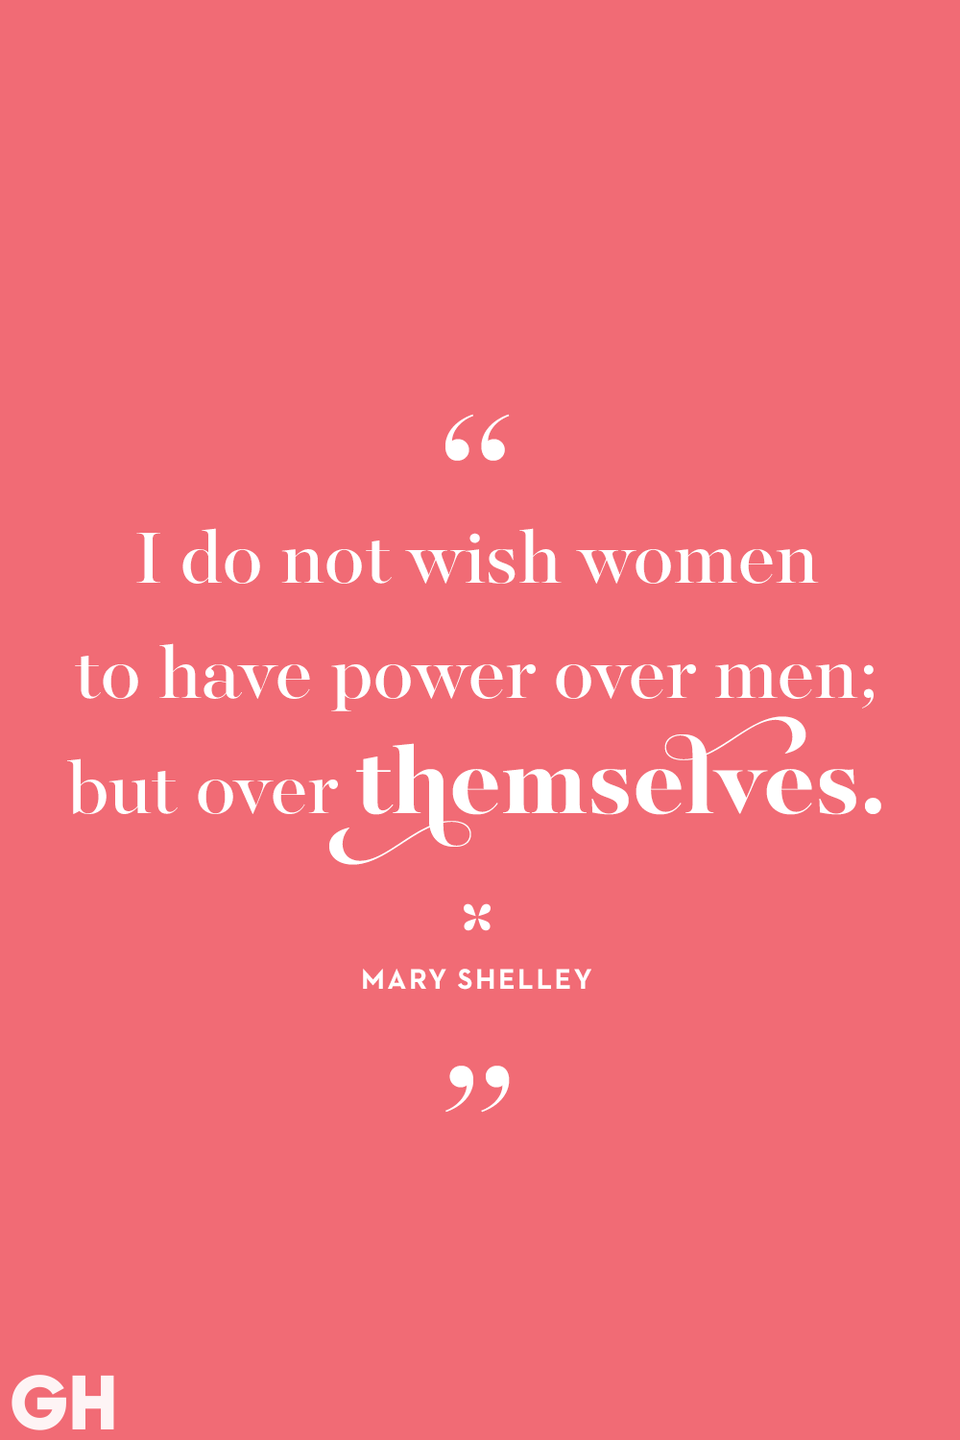 <p>I do not wish women to have power over men; but over themselves.</p>